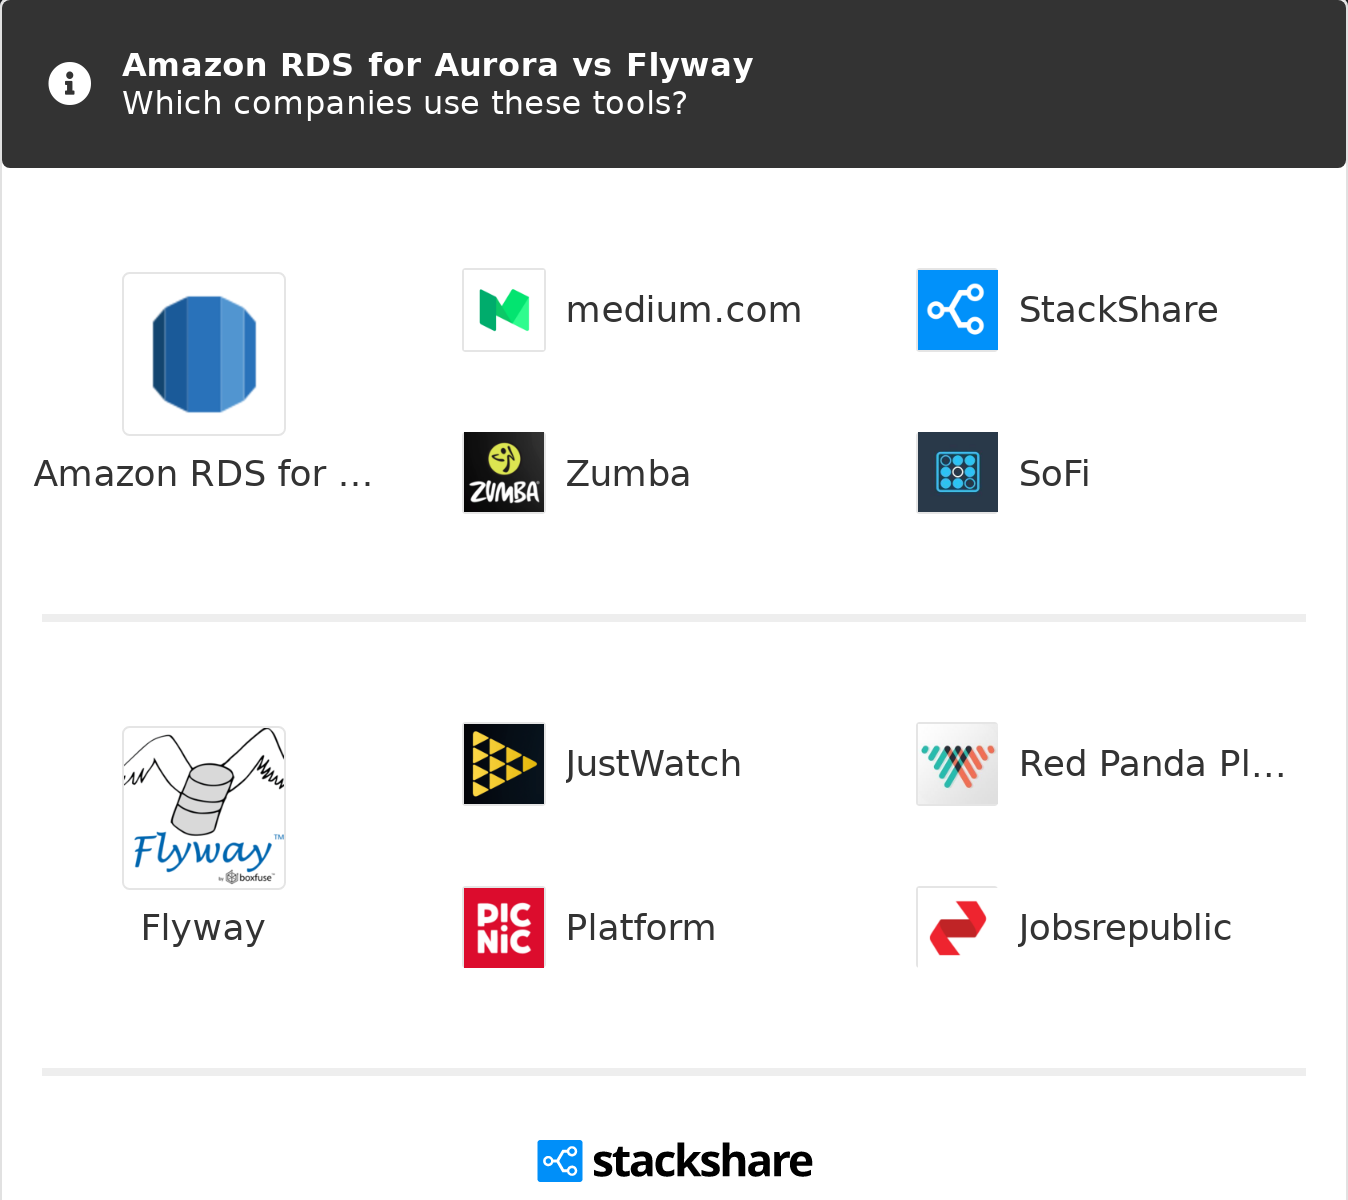 Amazon RDS for Aurora vs Flyway | What are the differences?